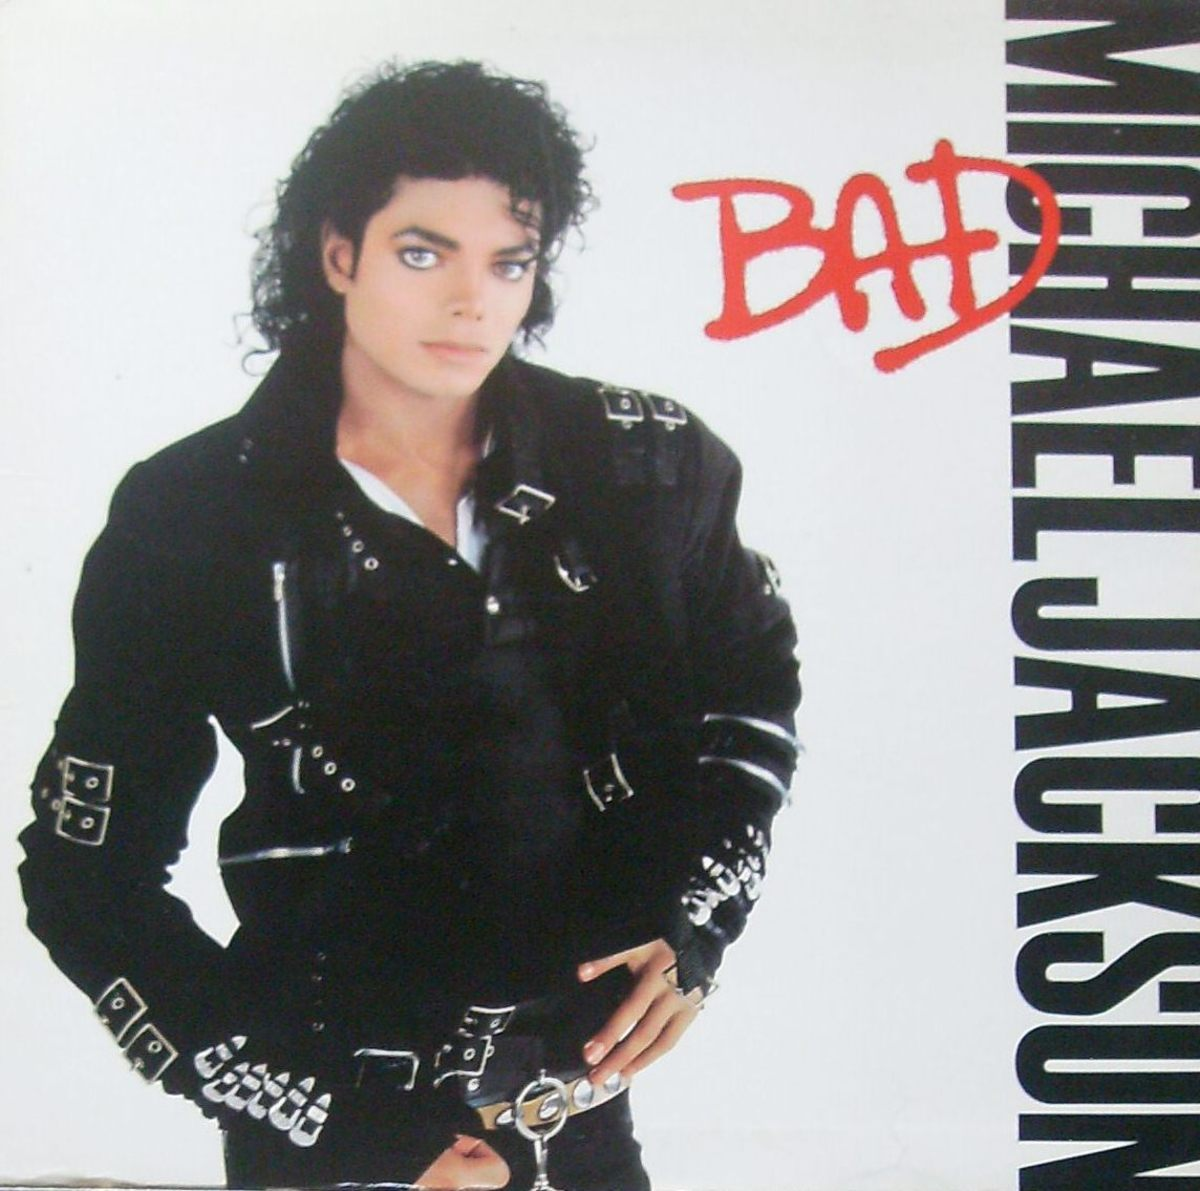 One of my Michael Jackson LPs